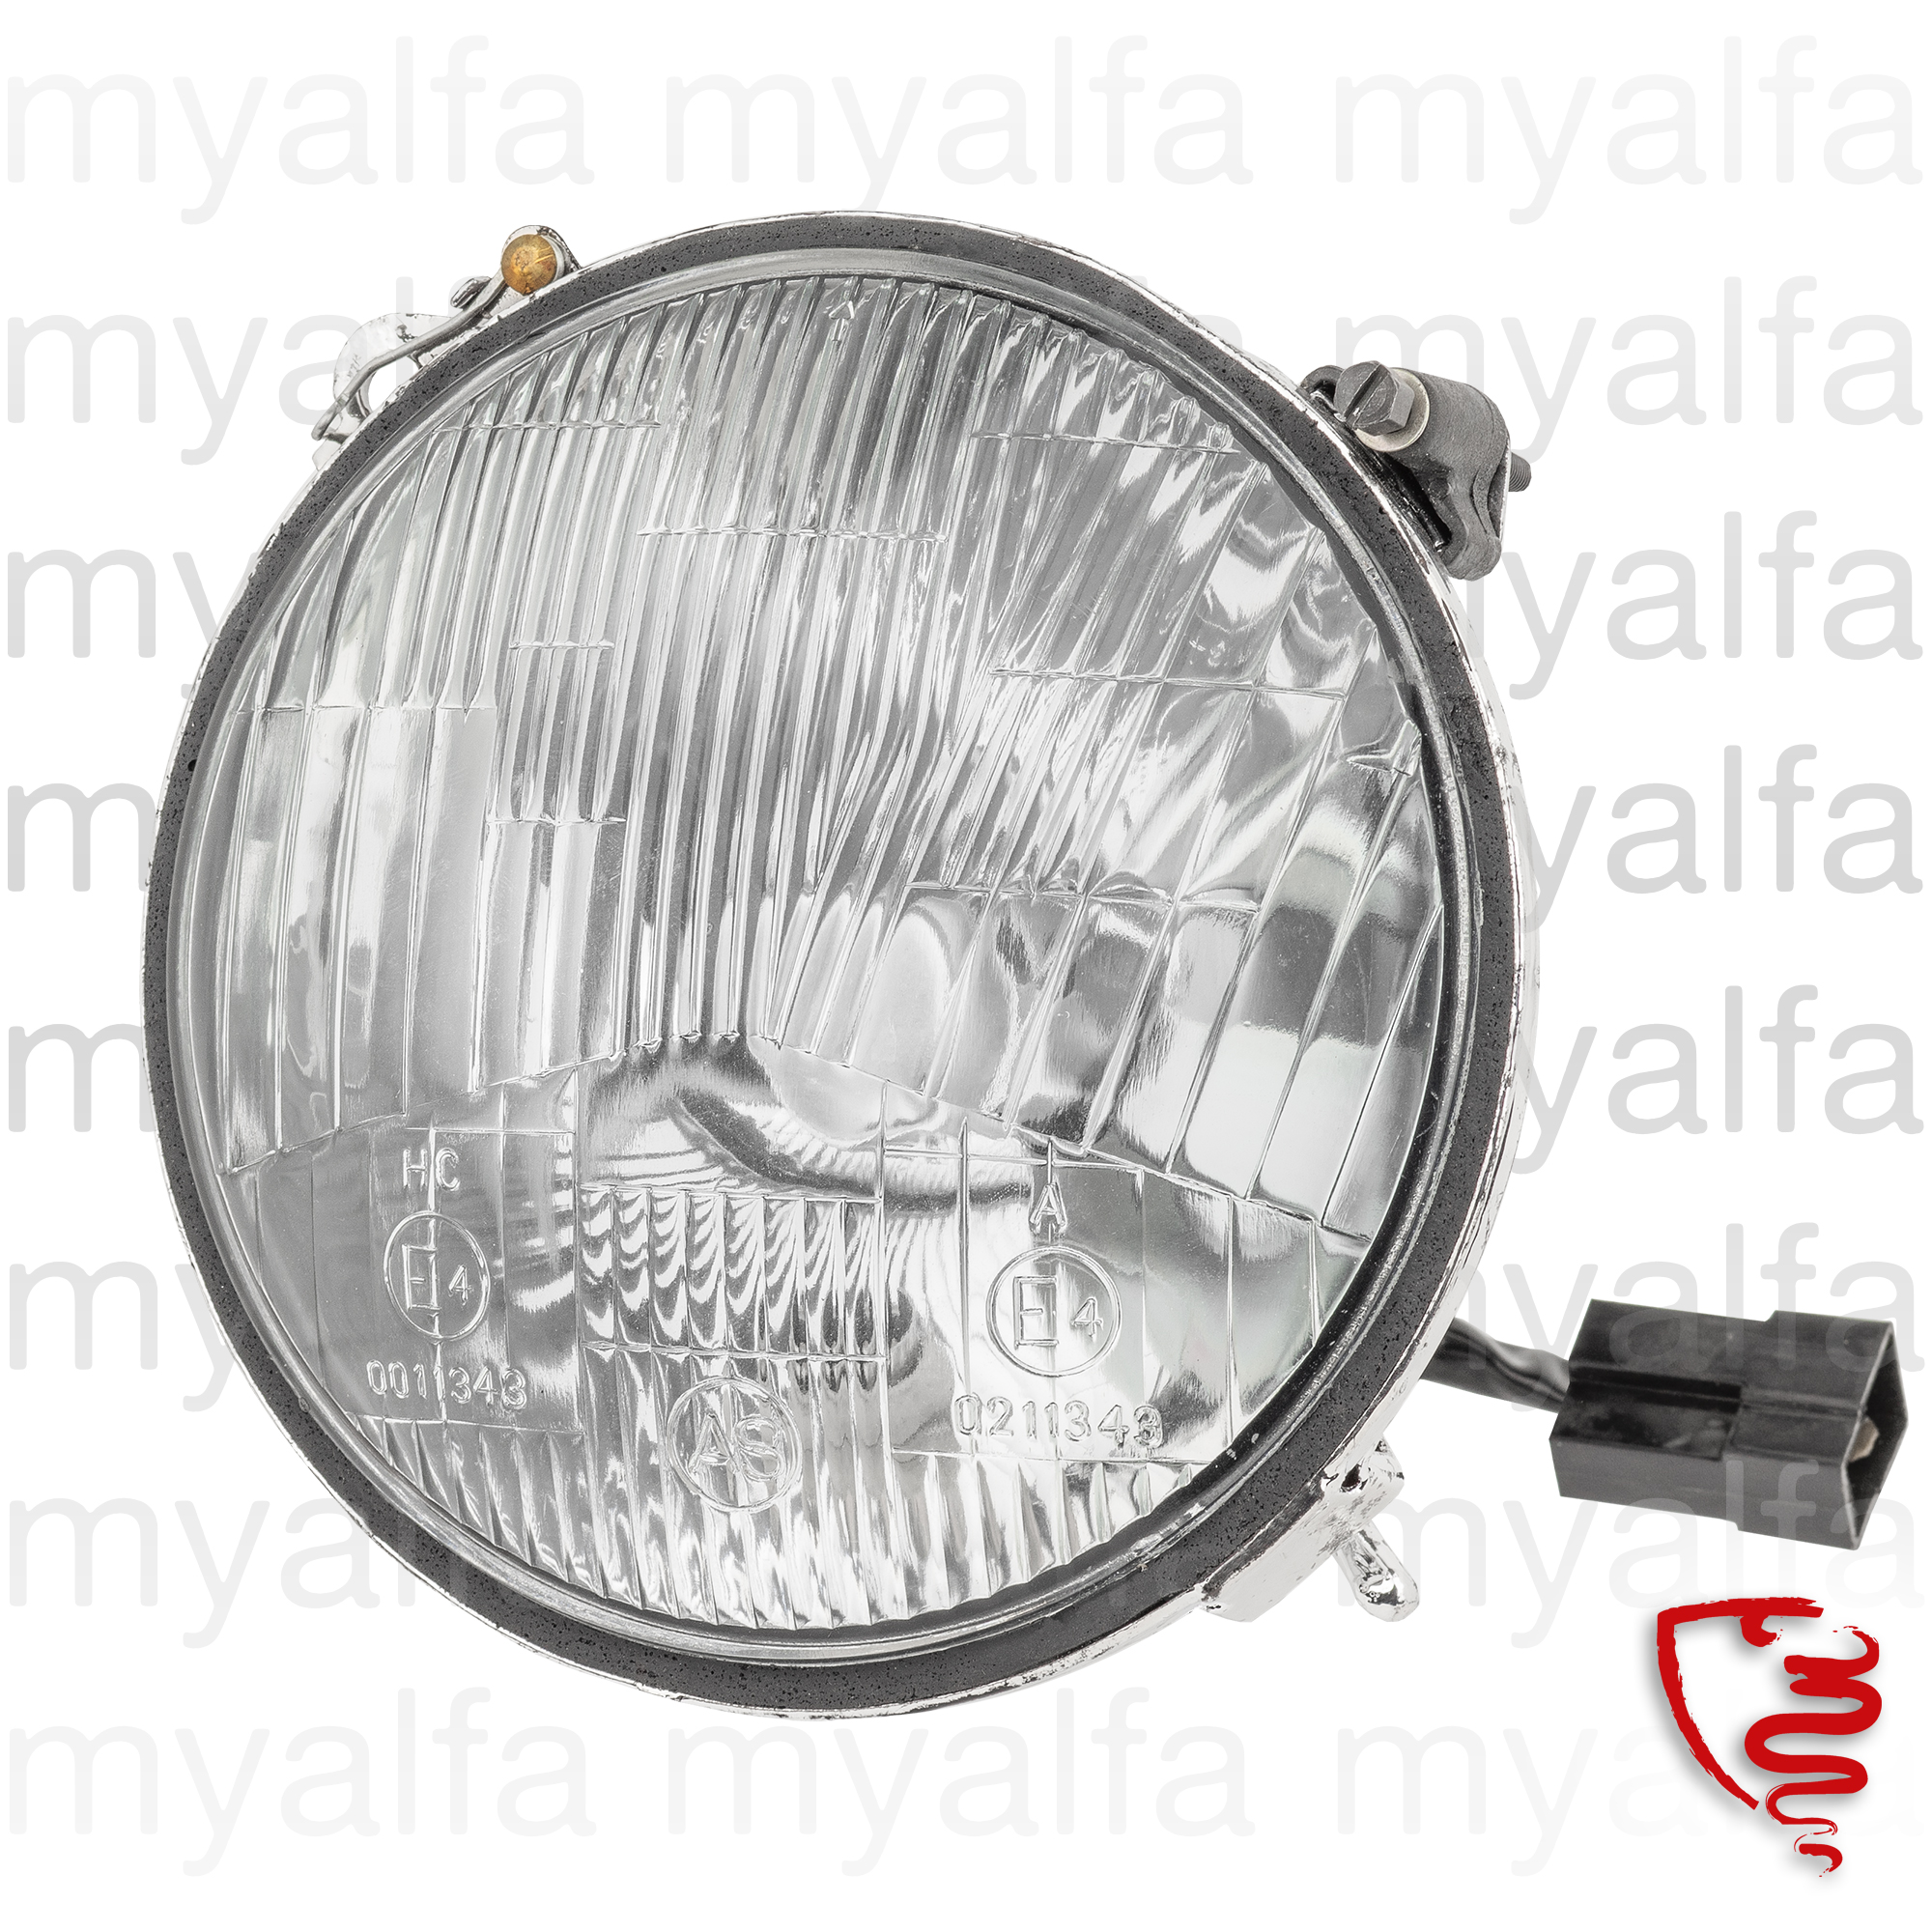 exterior lighthouse right GTV6 for 116/119, Body parts, Lighting, Head lamps